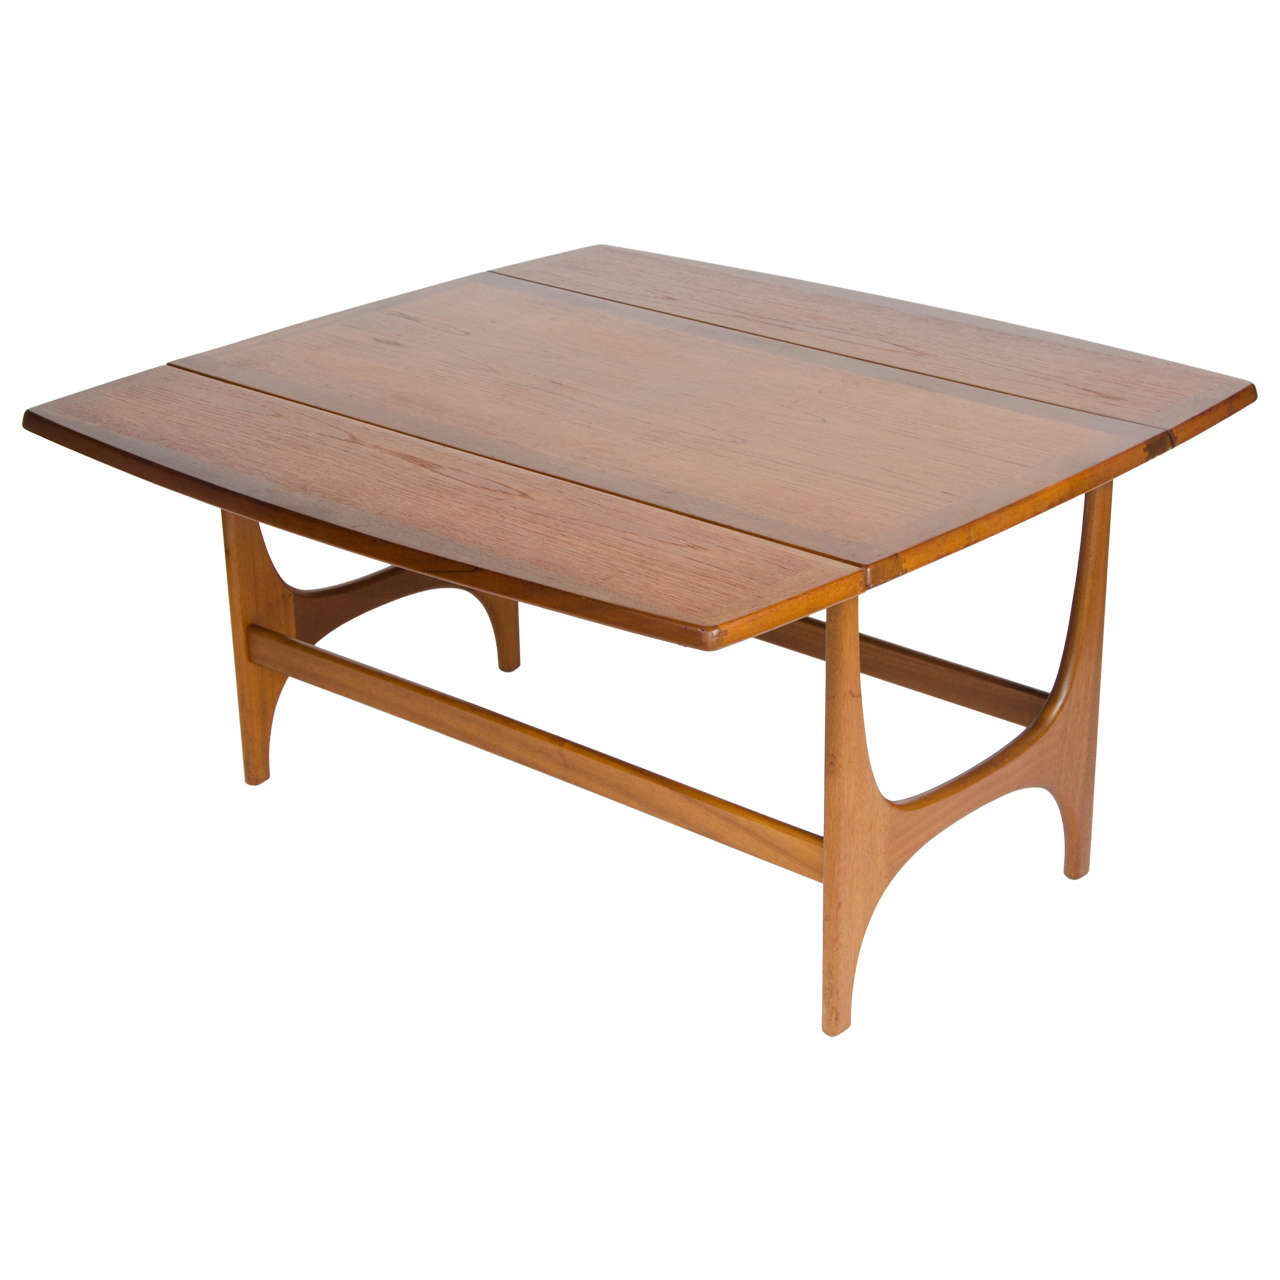 British 1960s stonehill coffee table at 1stdibs for Center table coffee table